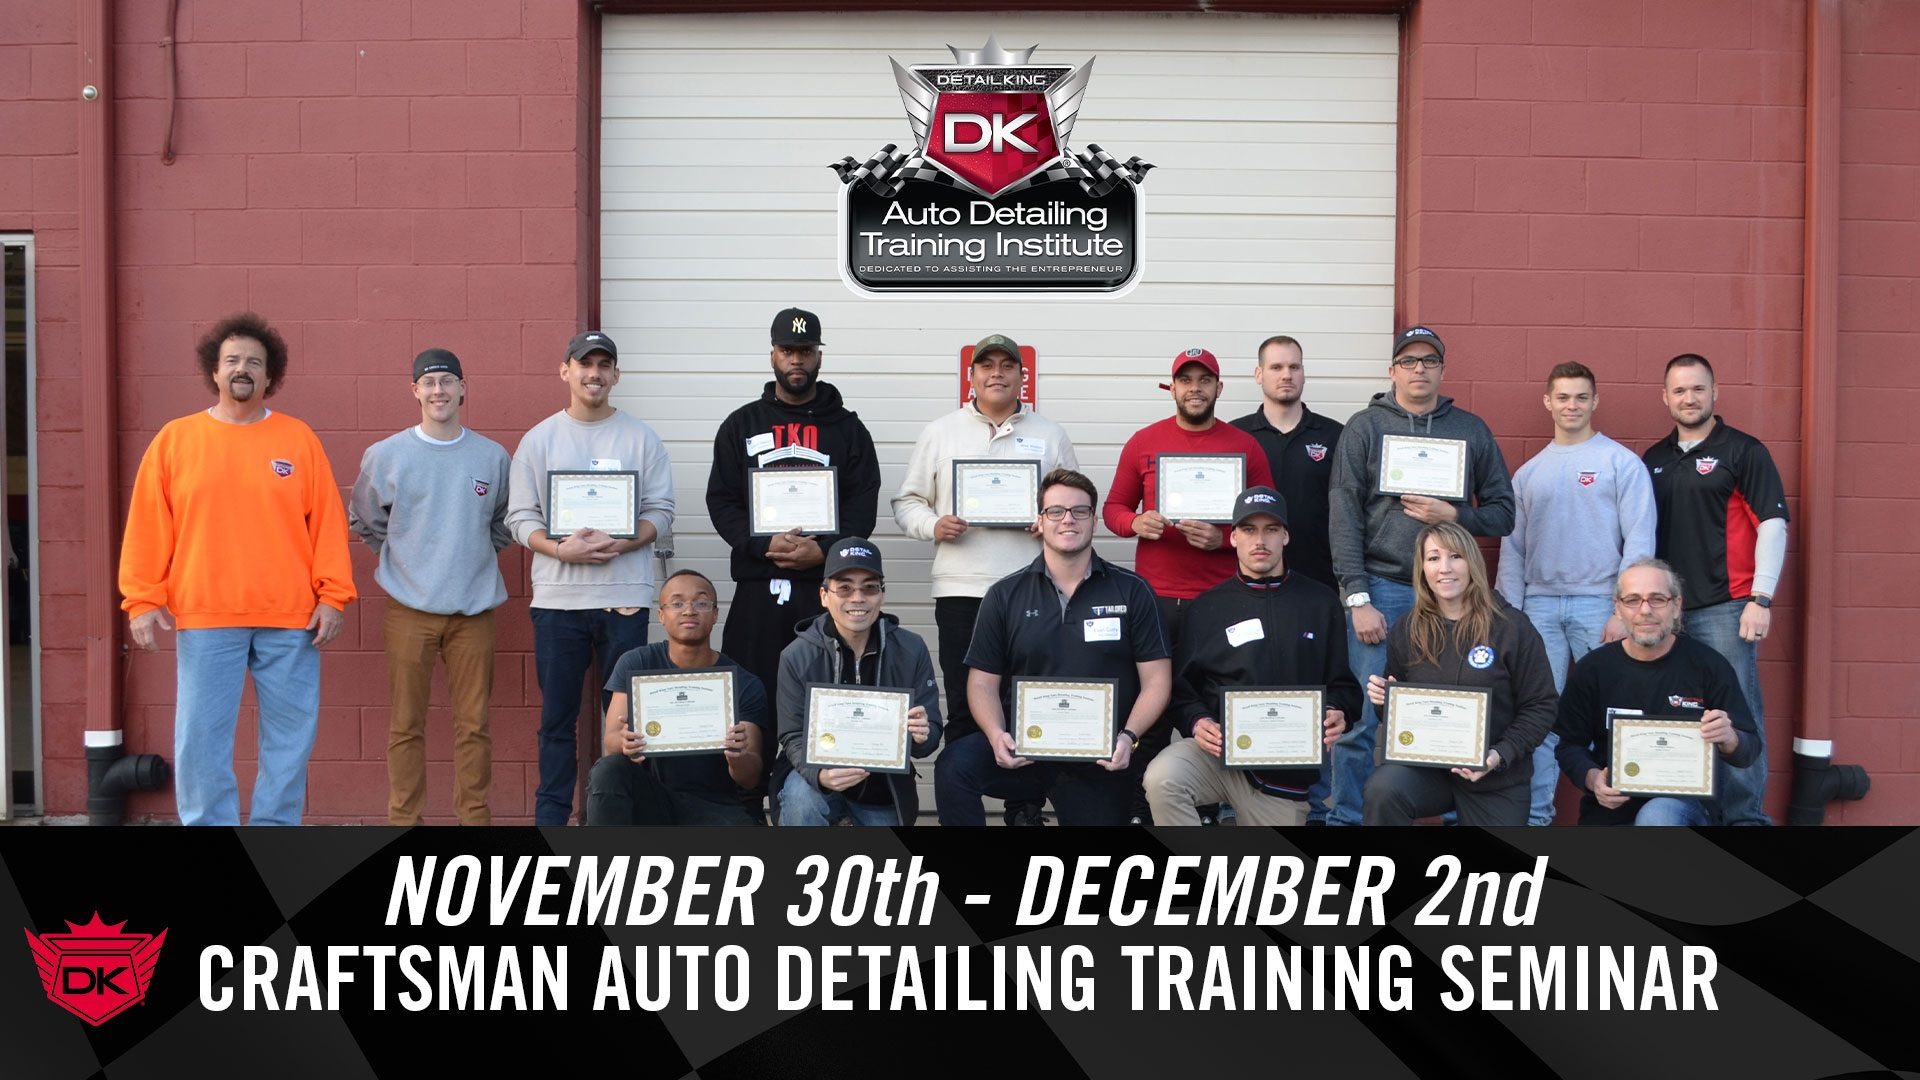 November 30th – December 2nd 2018 Craftsman Auto Detailing Training Seminar